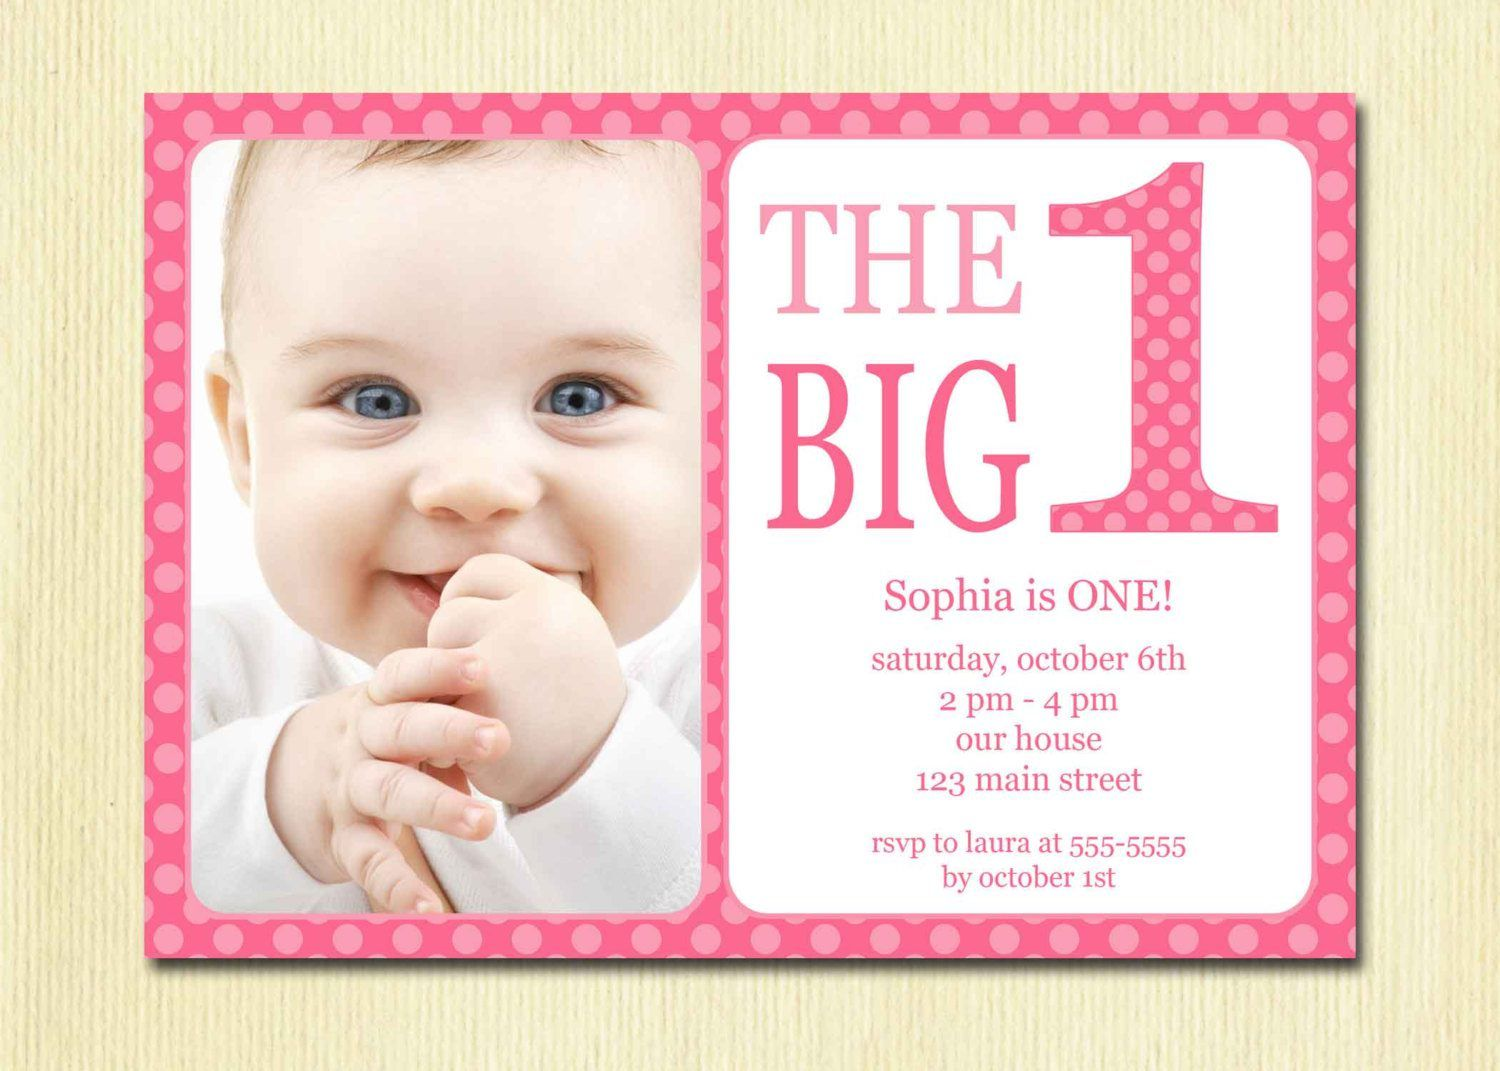 Free Printable 1st Birthday Invitation Template 1st Birthday Party Invitations 1st Birthday Invitations Birthday Invitation Card Template